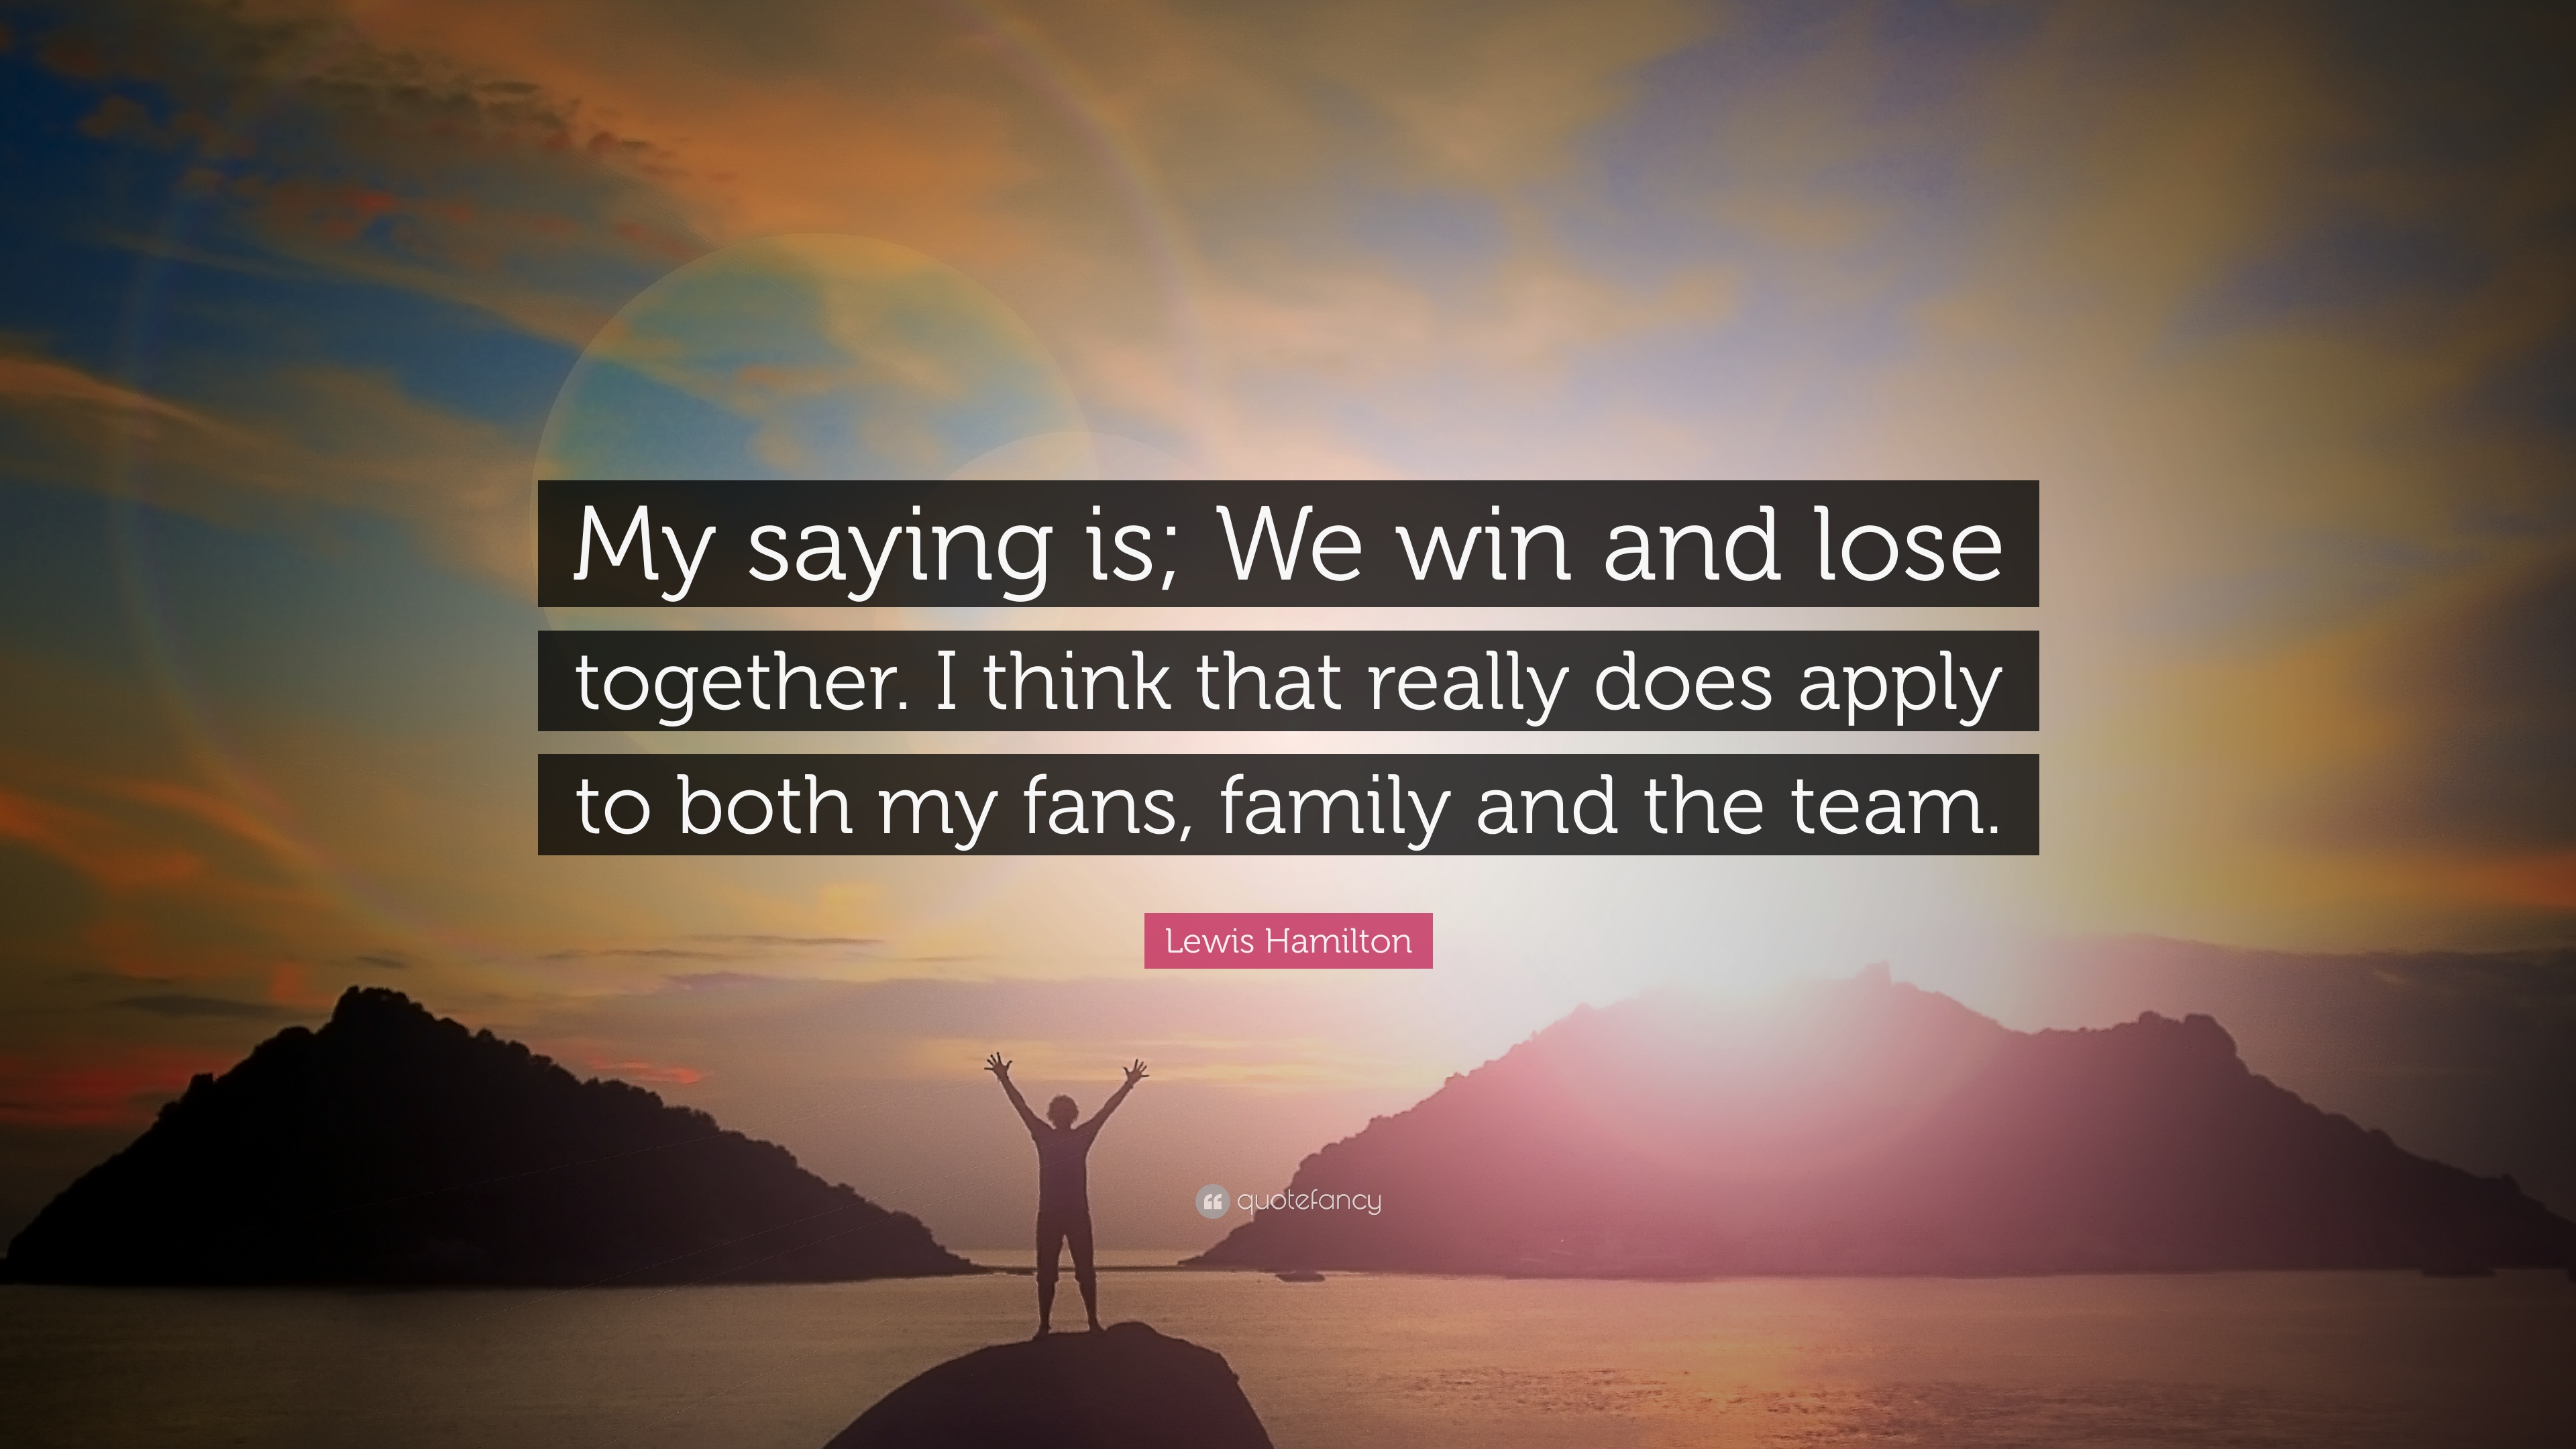 Conor Mcgregor Quote Wallpaper Lewis Hamilton Quote My Saying Is We Win And Lose